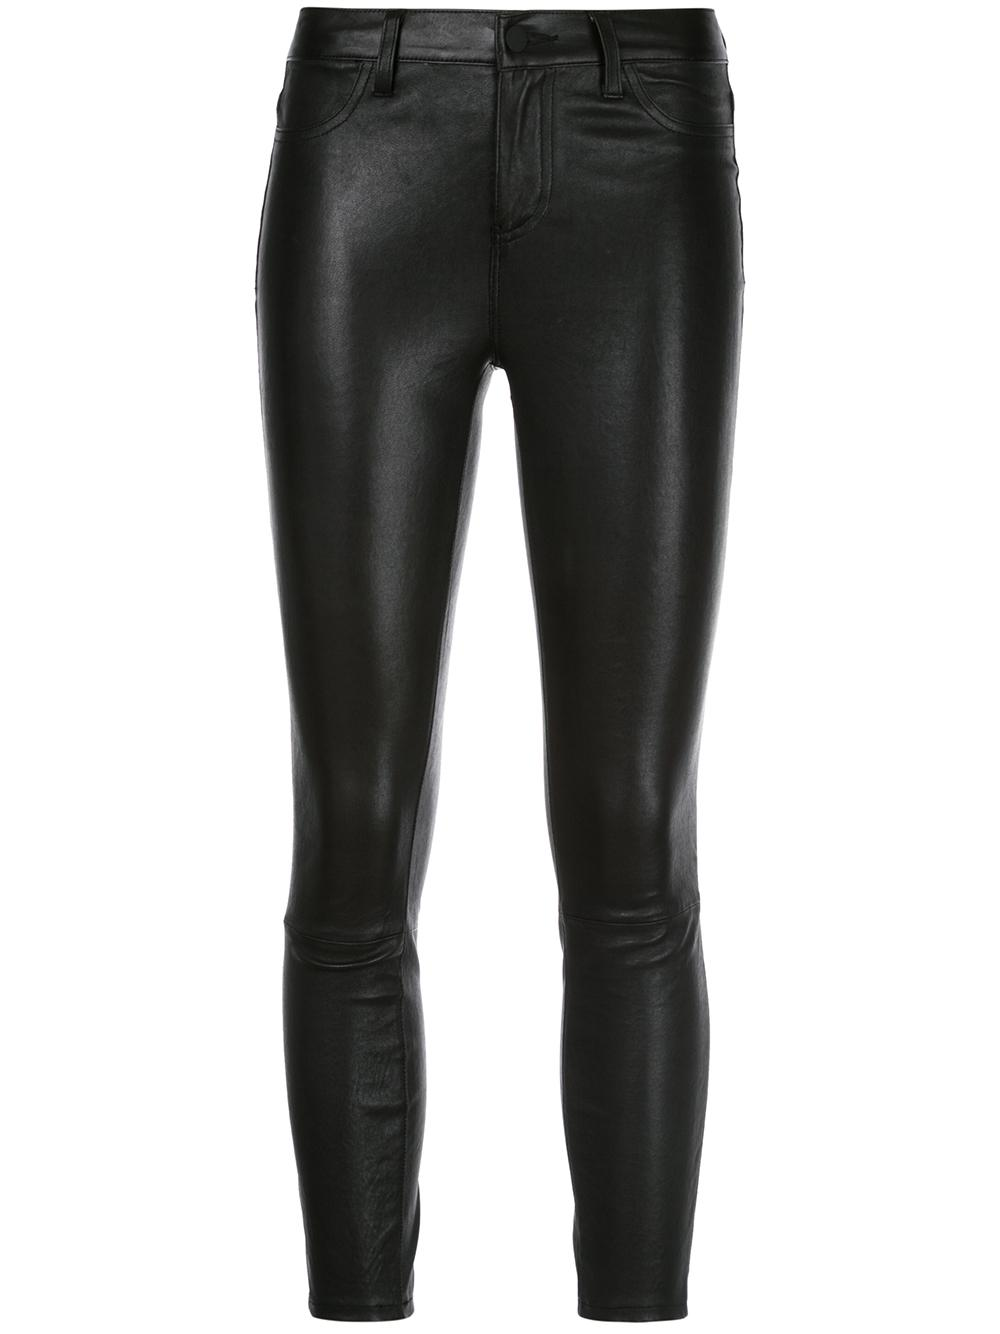 Adelaide Leather High Rise Skinny Pant Item # 2377SVC